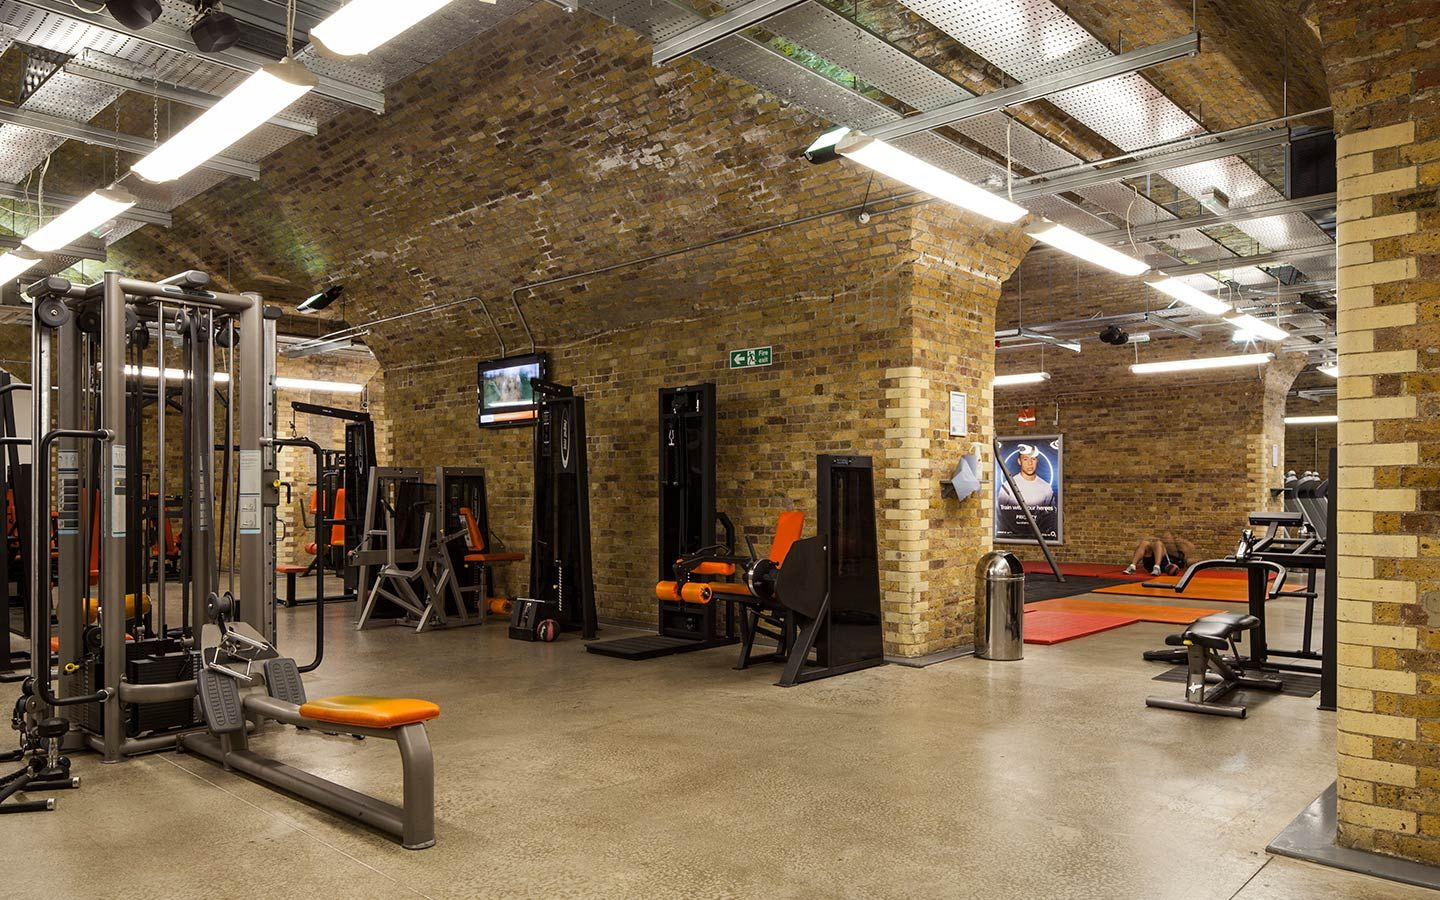 Inspirational garage gyms & ideas gallery pg 6 gym business ideas